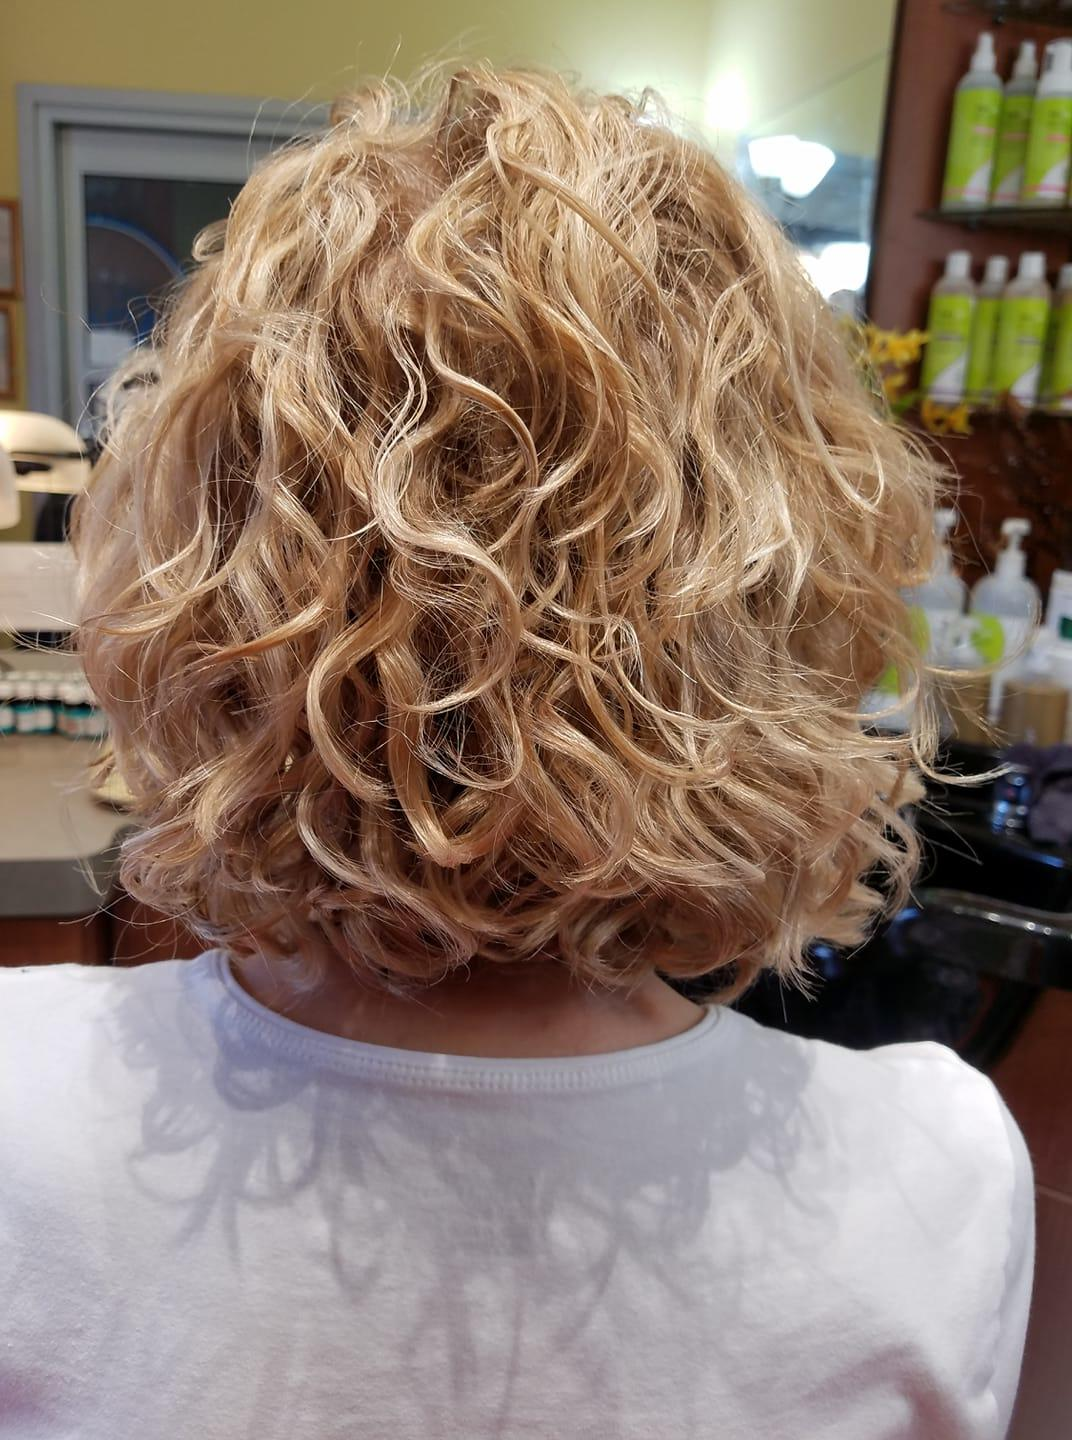 Curls by September image 6